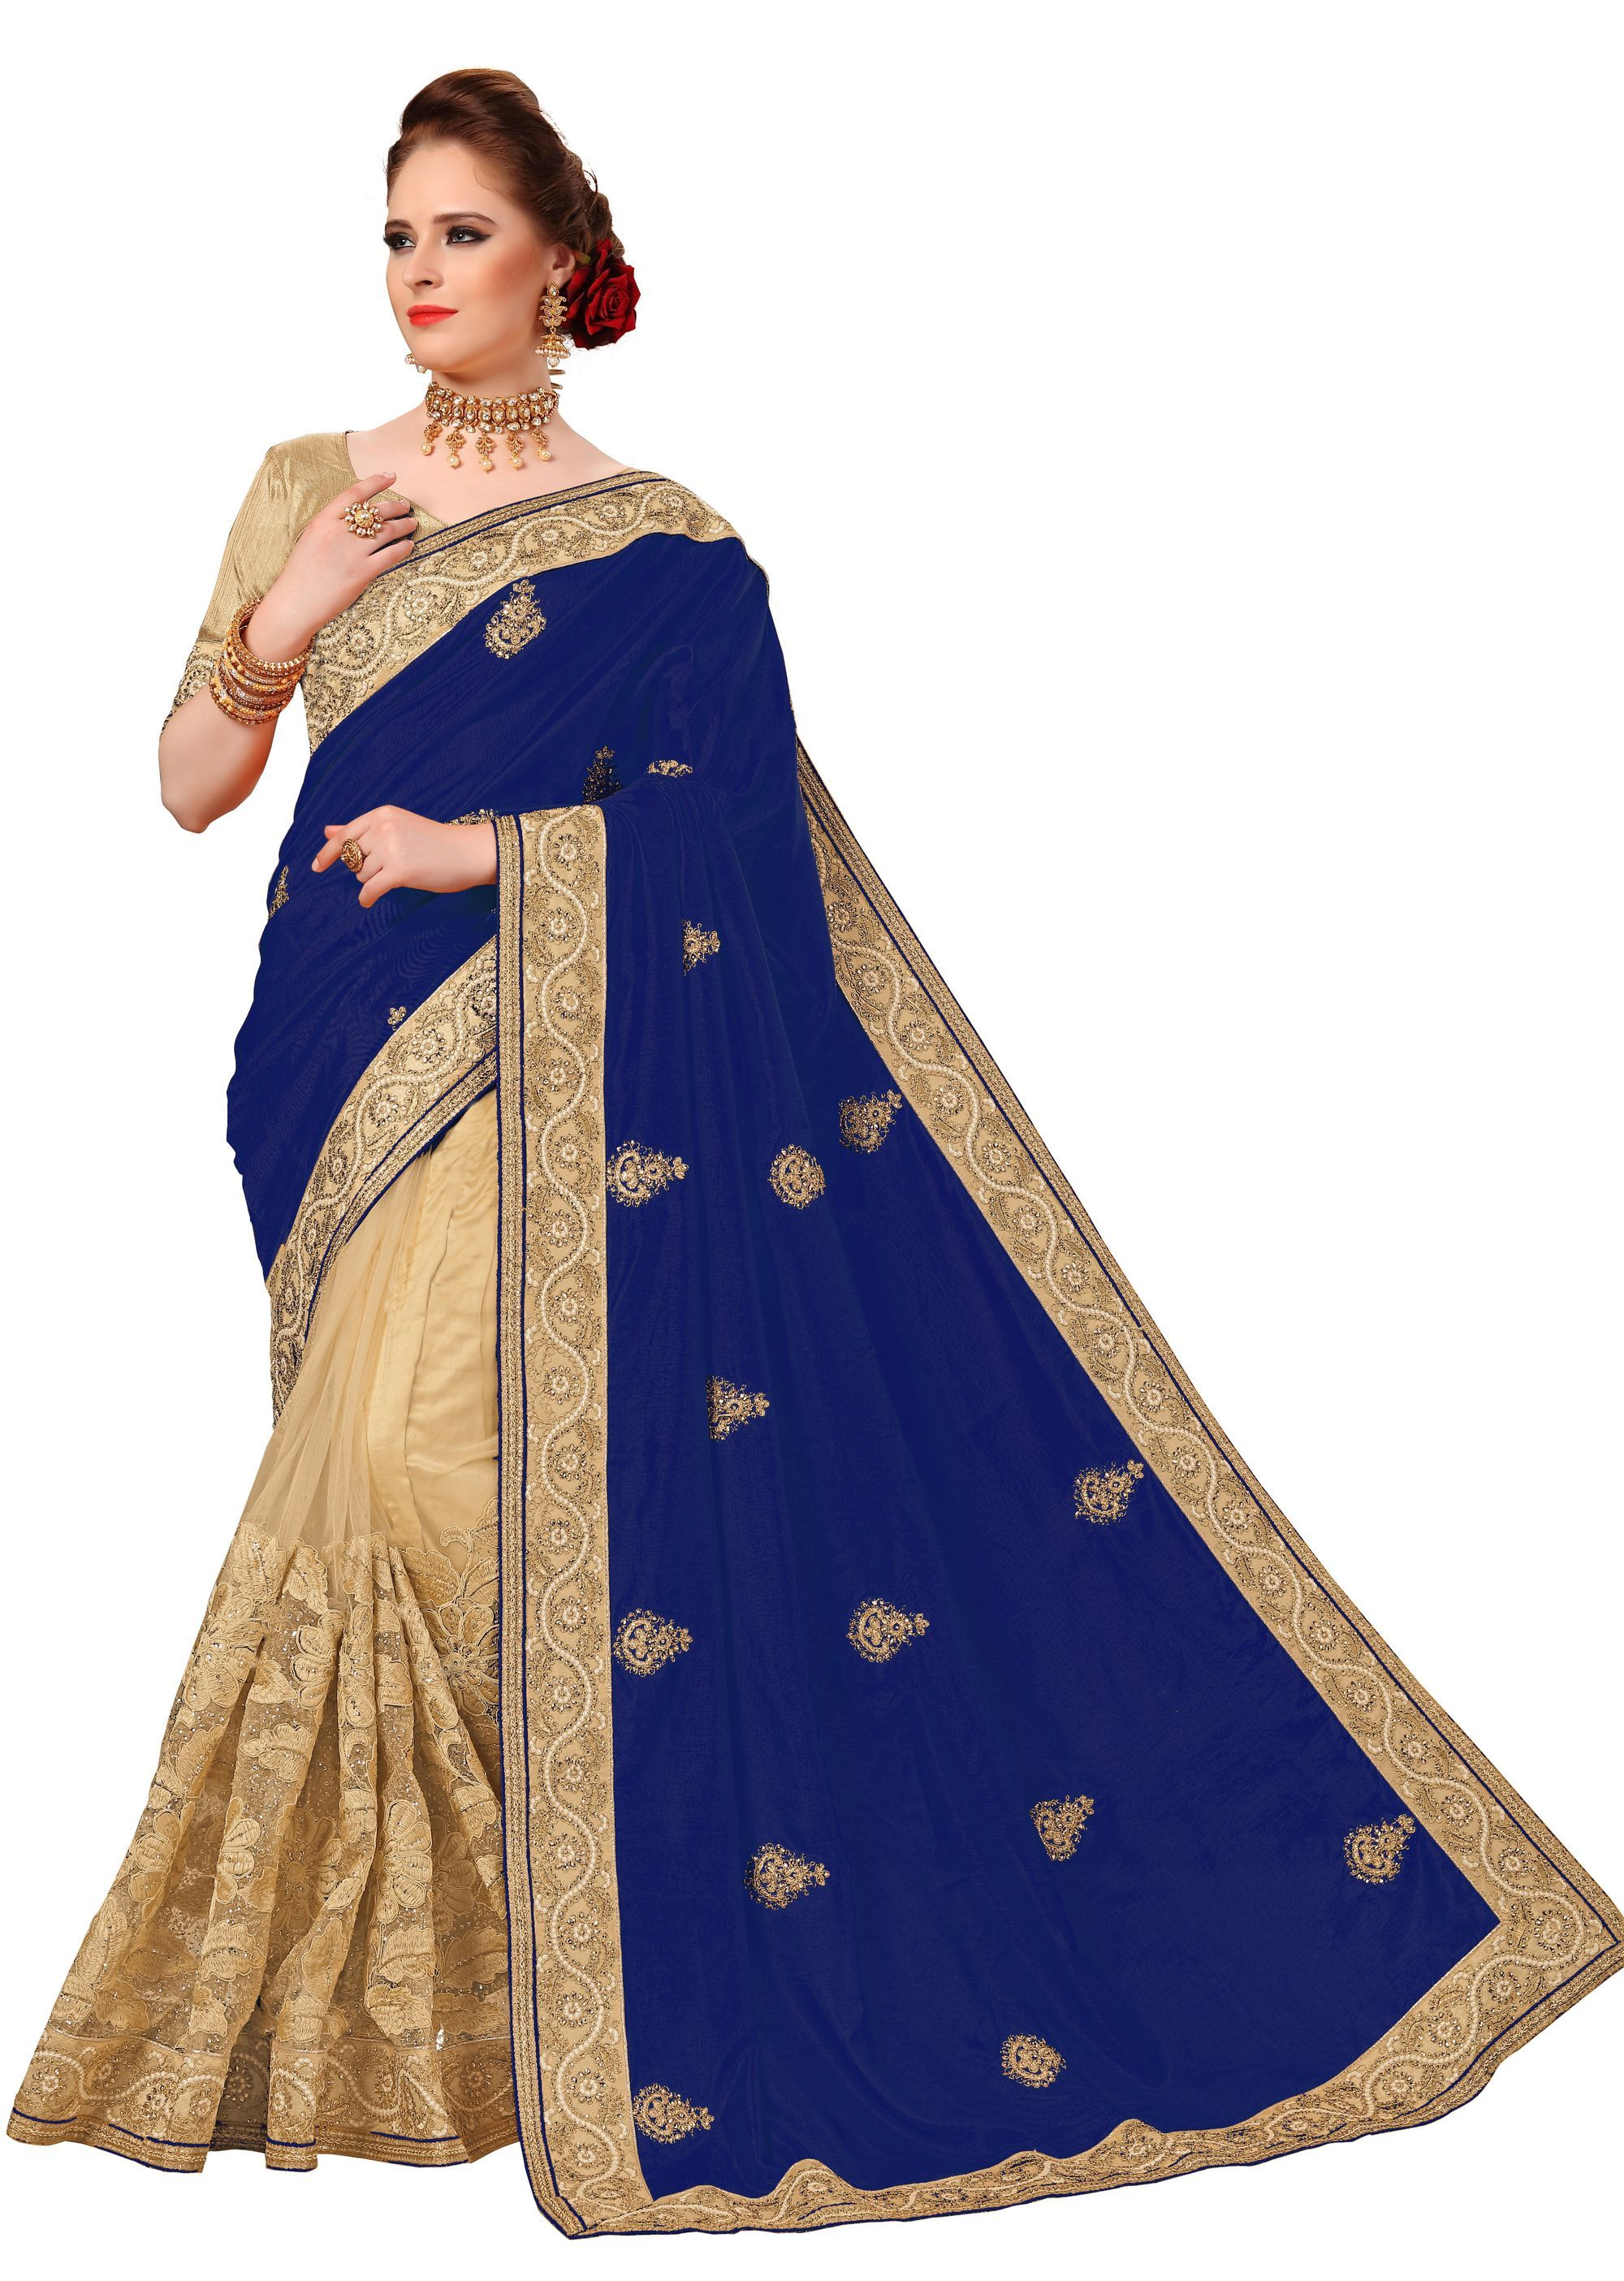 Heavy Embroidery Silk Net Saree collection